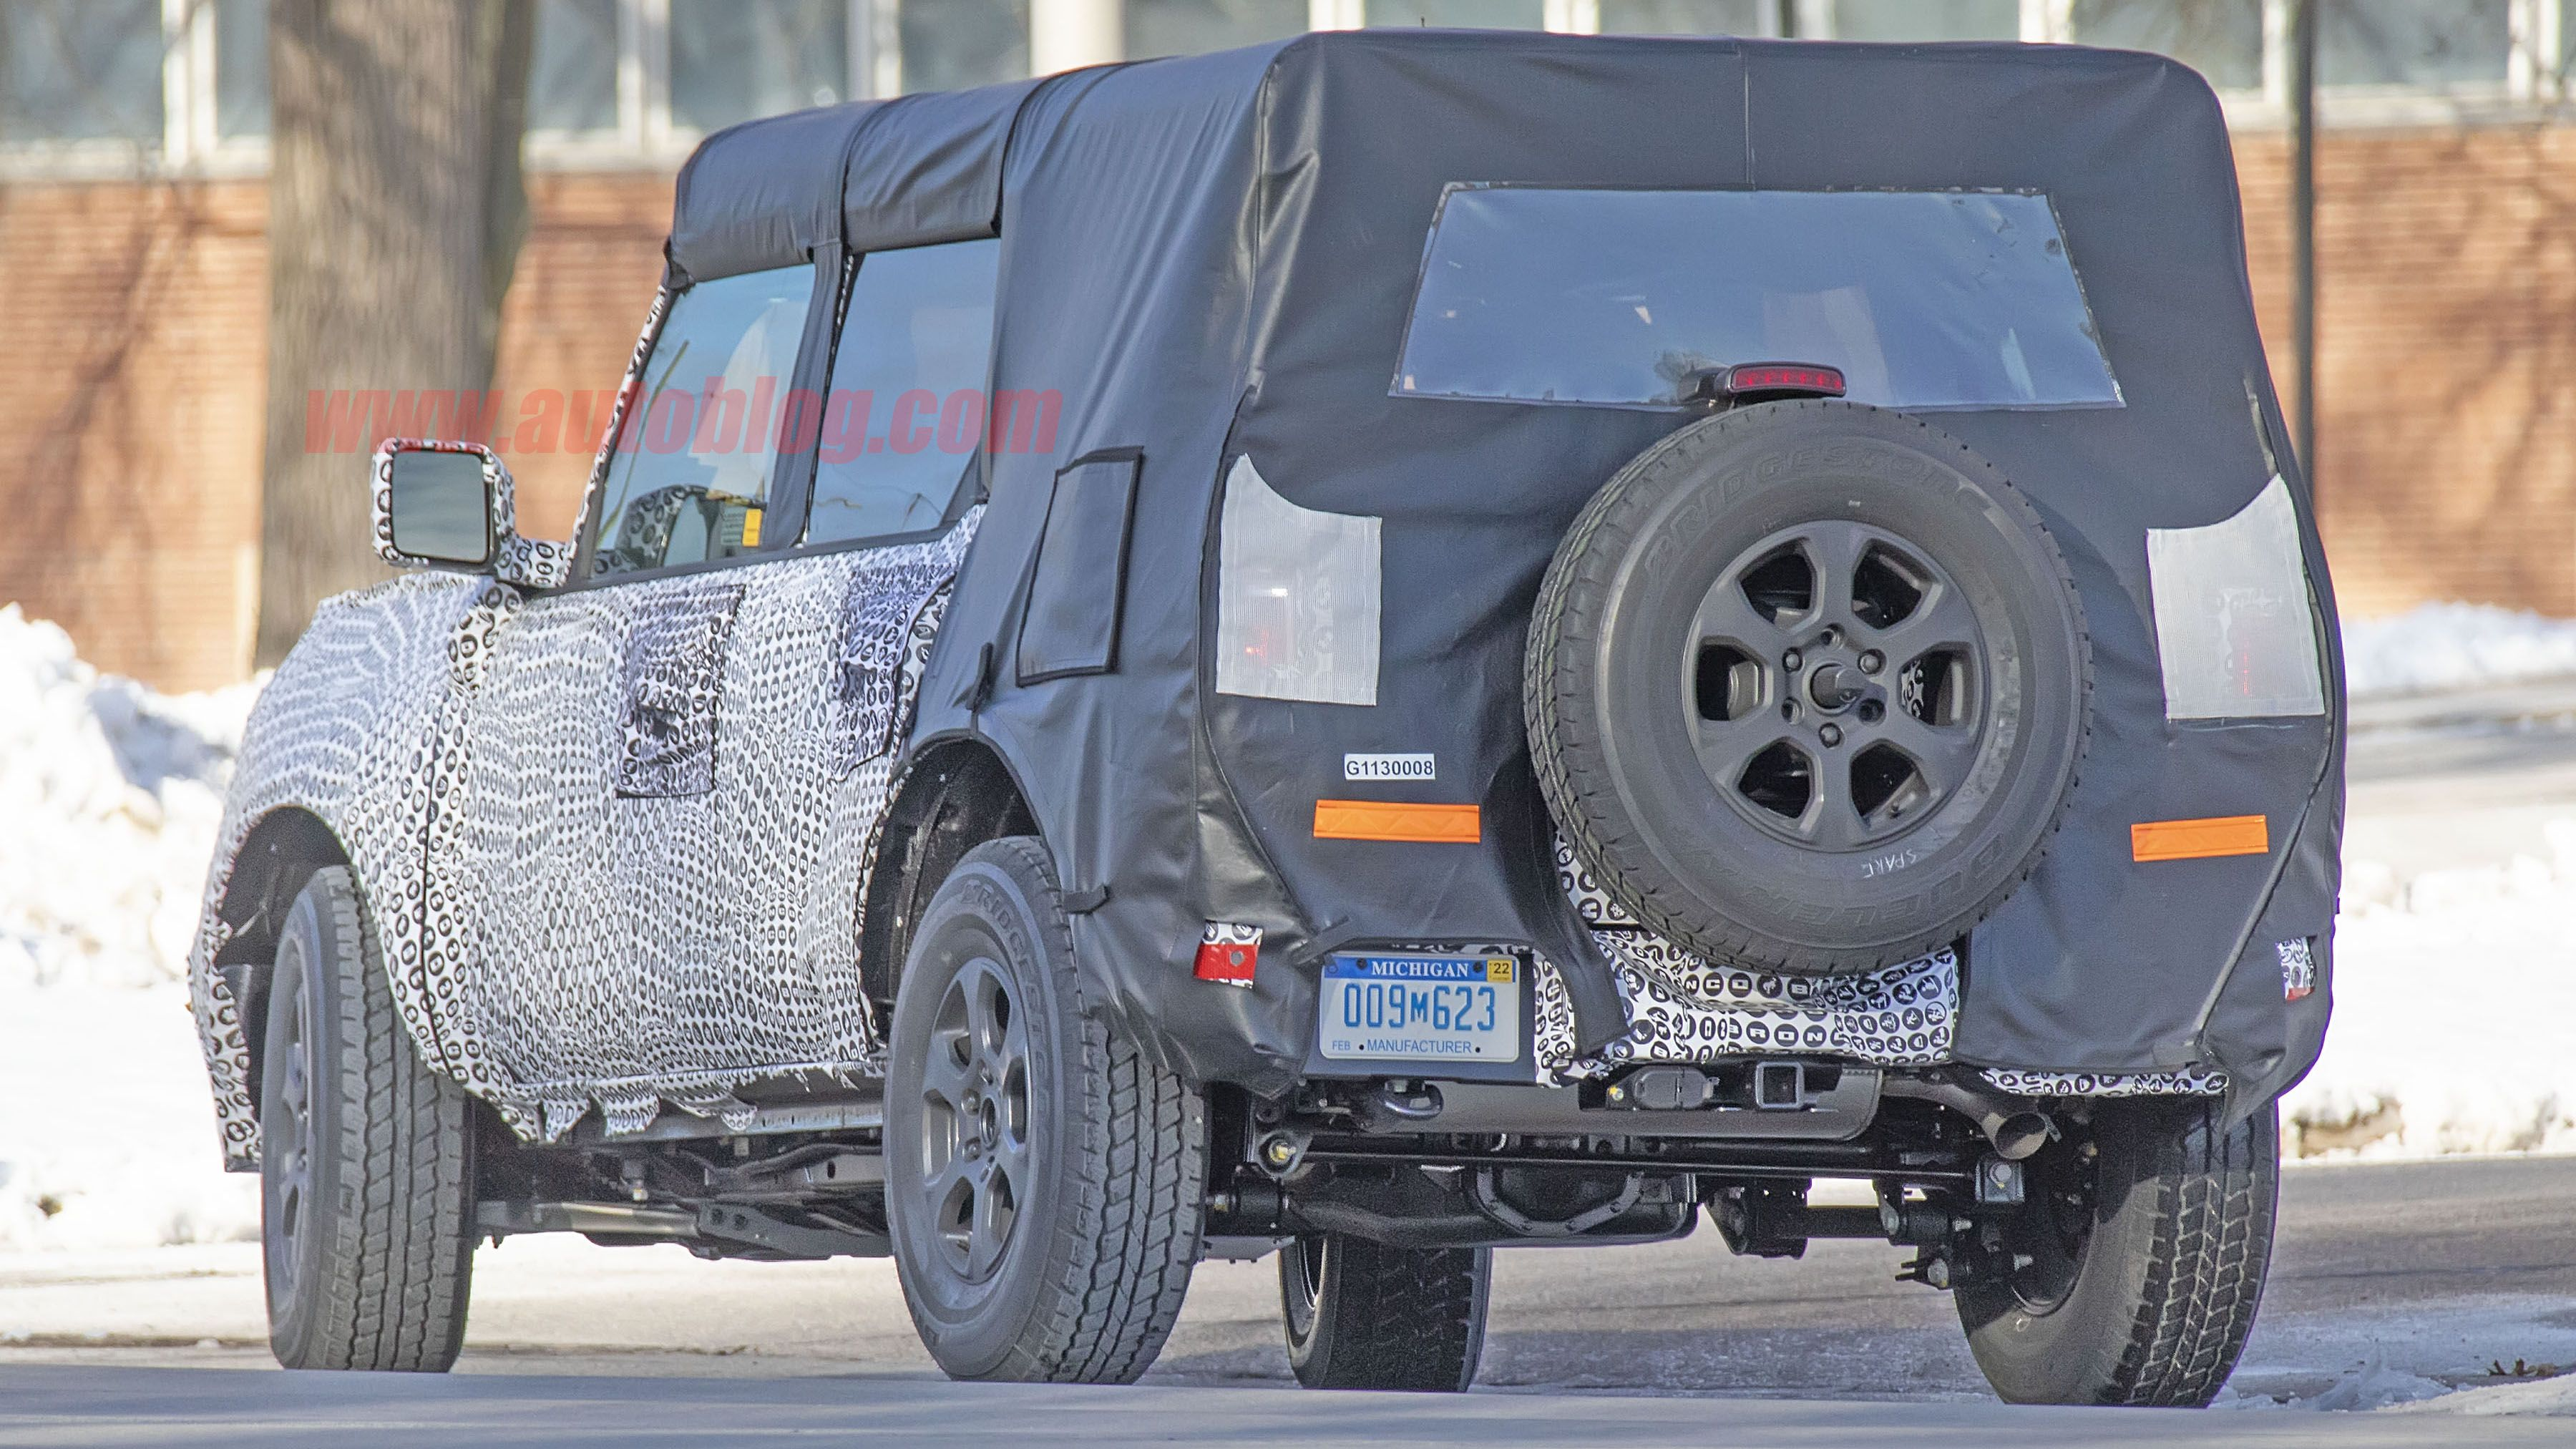 New Shots Of The 2021 Ford Bronco Show Suspension Removable Roof In 2020 Ford Bronco Bronco Ford